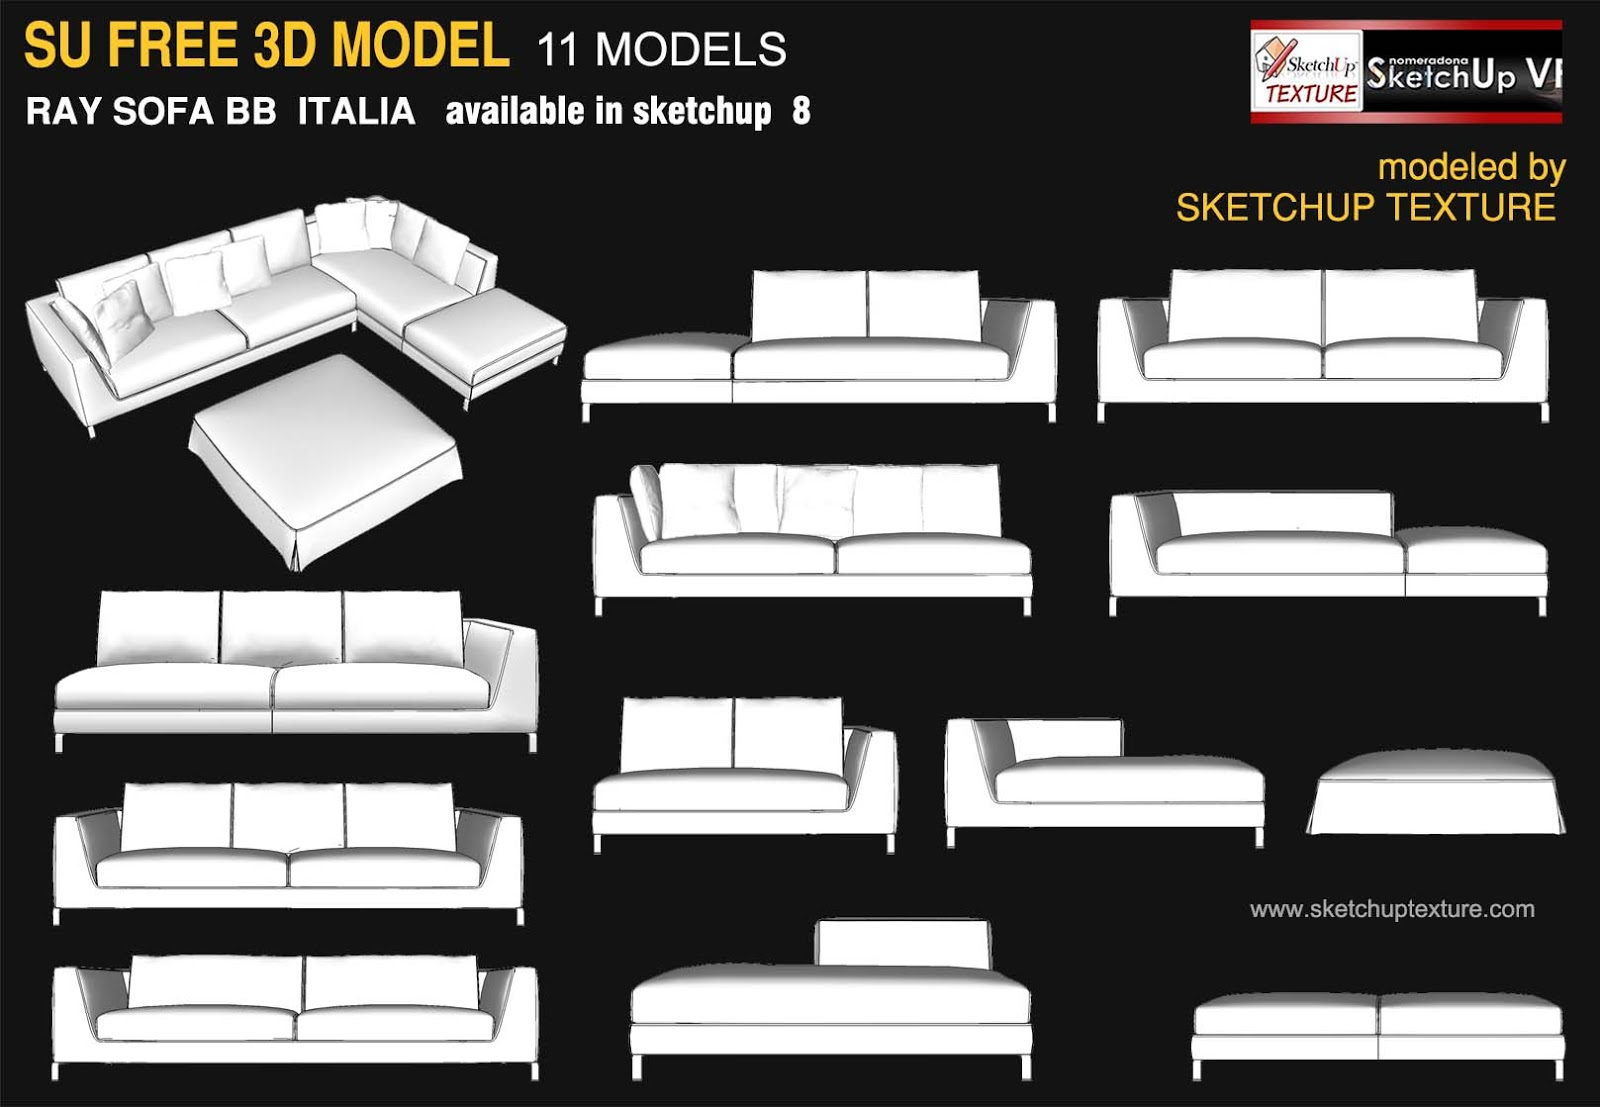 free Sketchup 3d model Ray Sofa BB Italia modules by skethuptexture.com